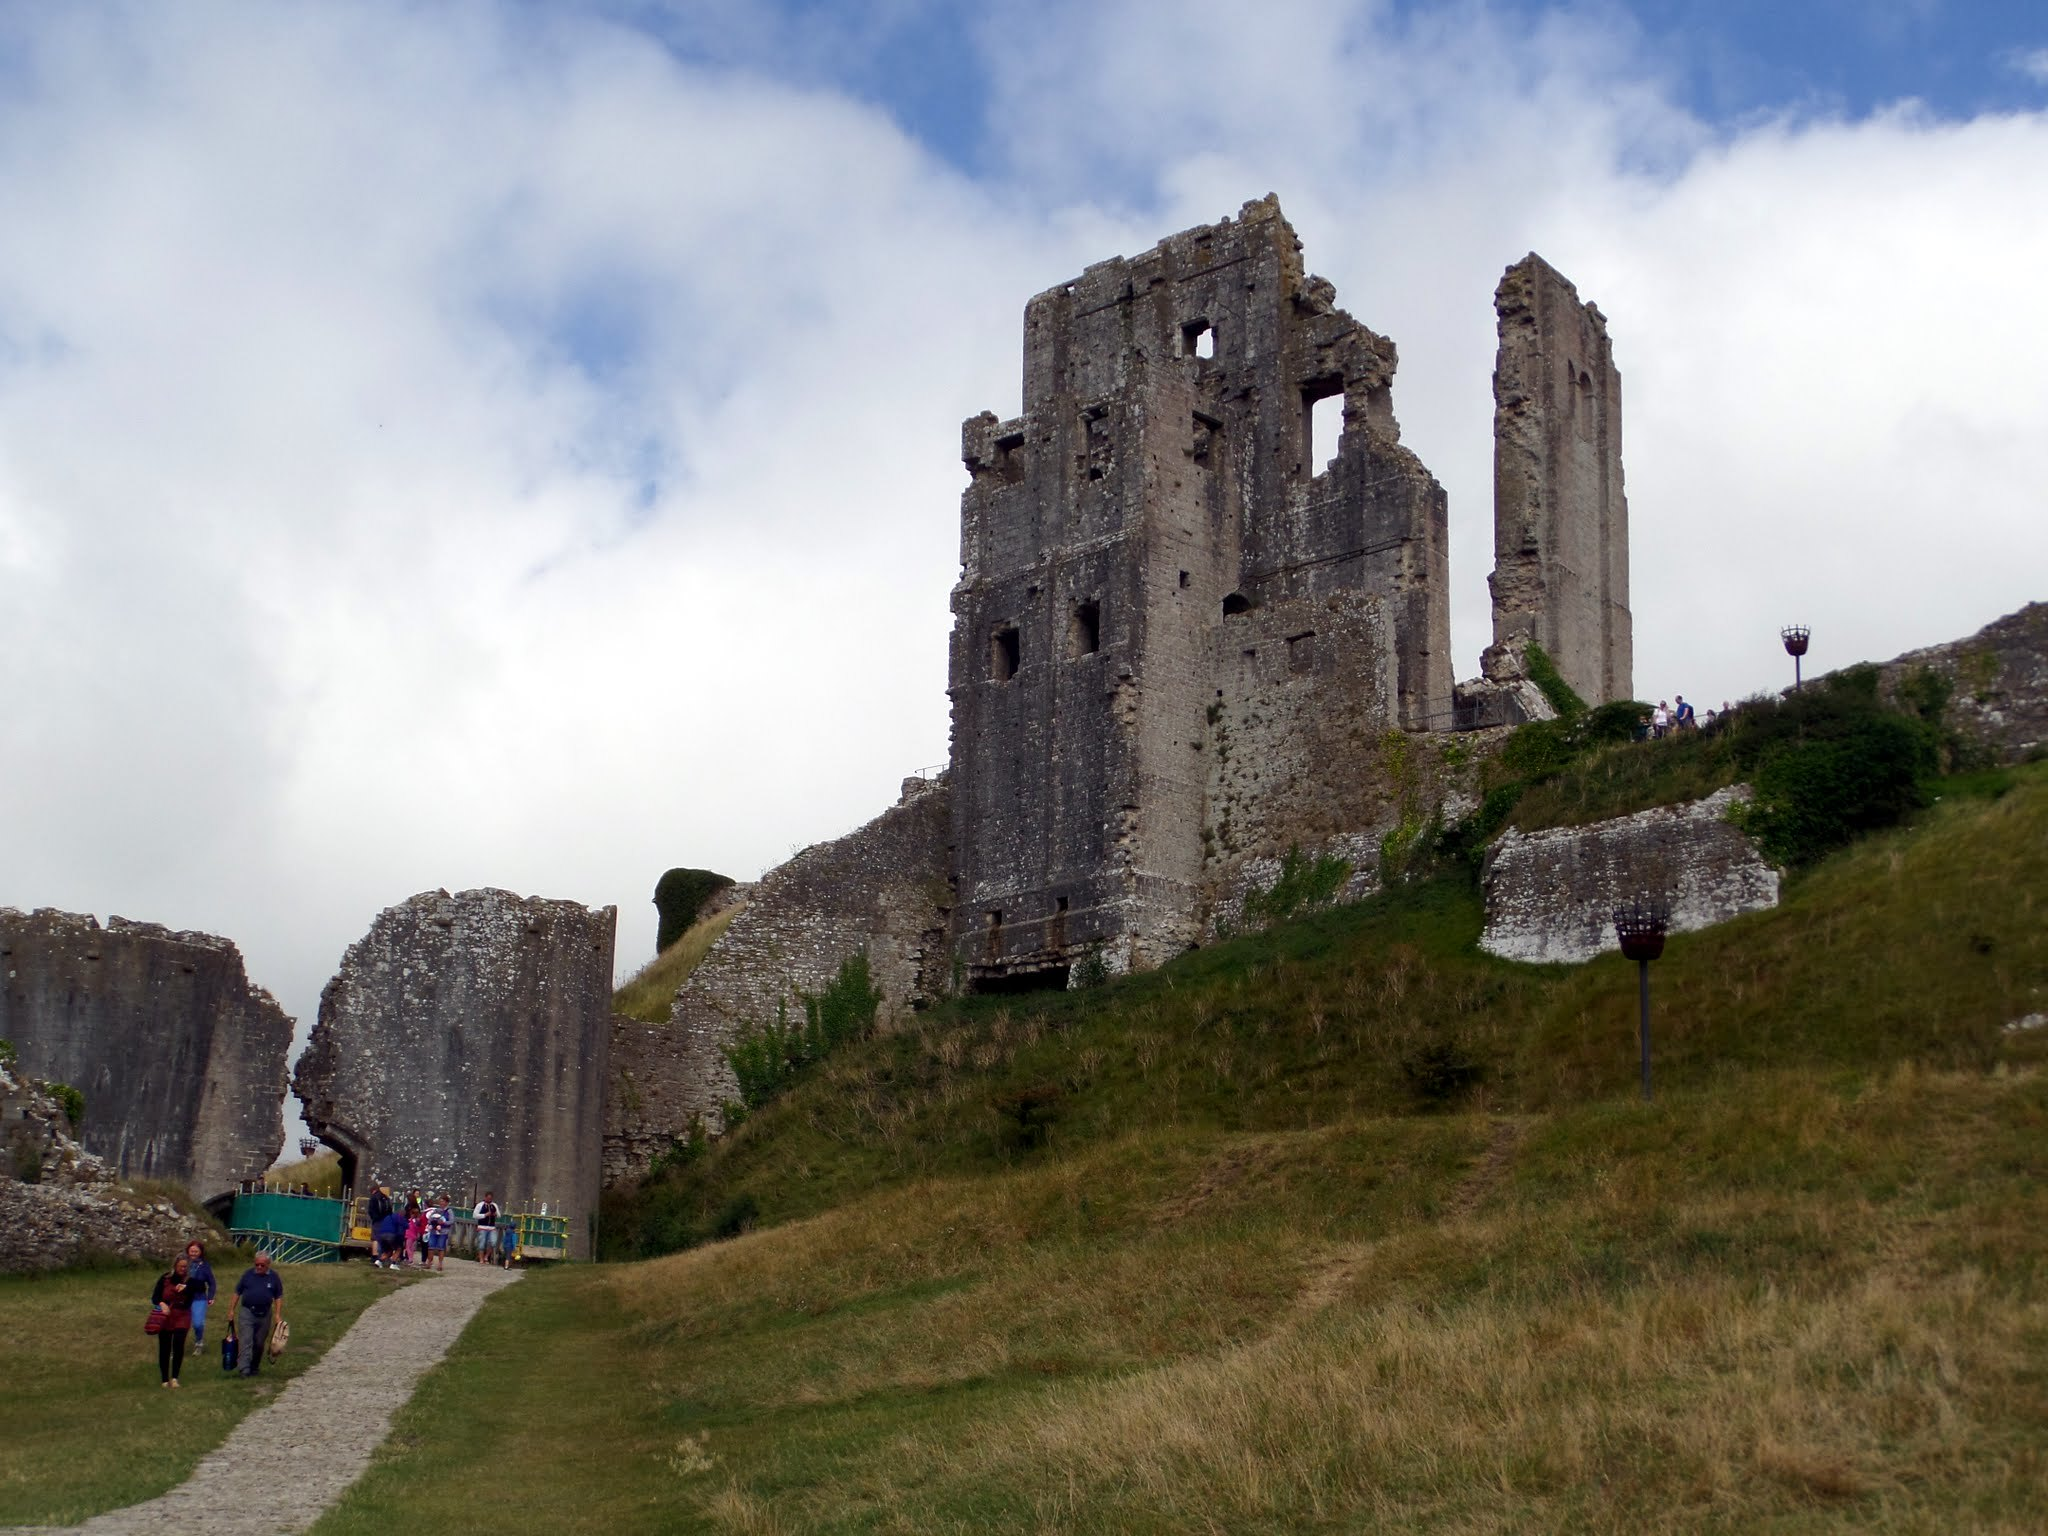 The ruins of Corfe Castle